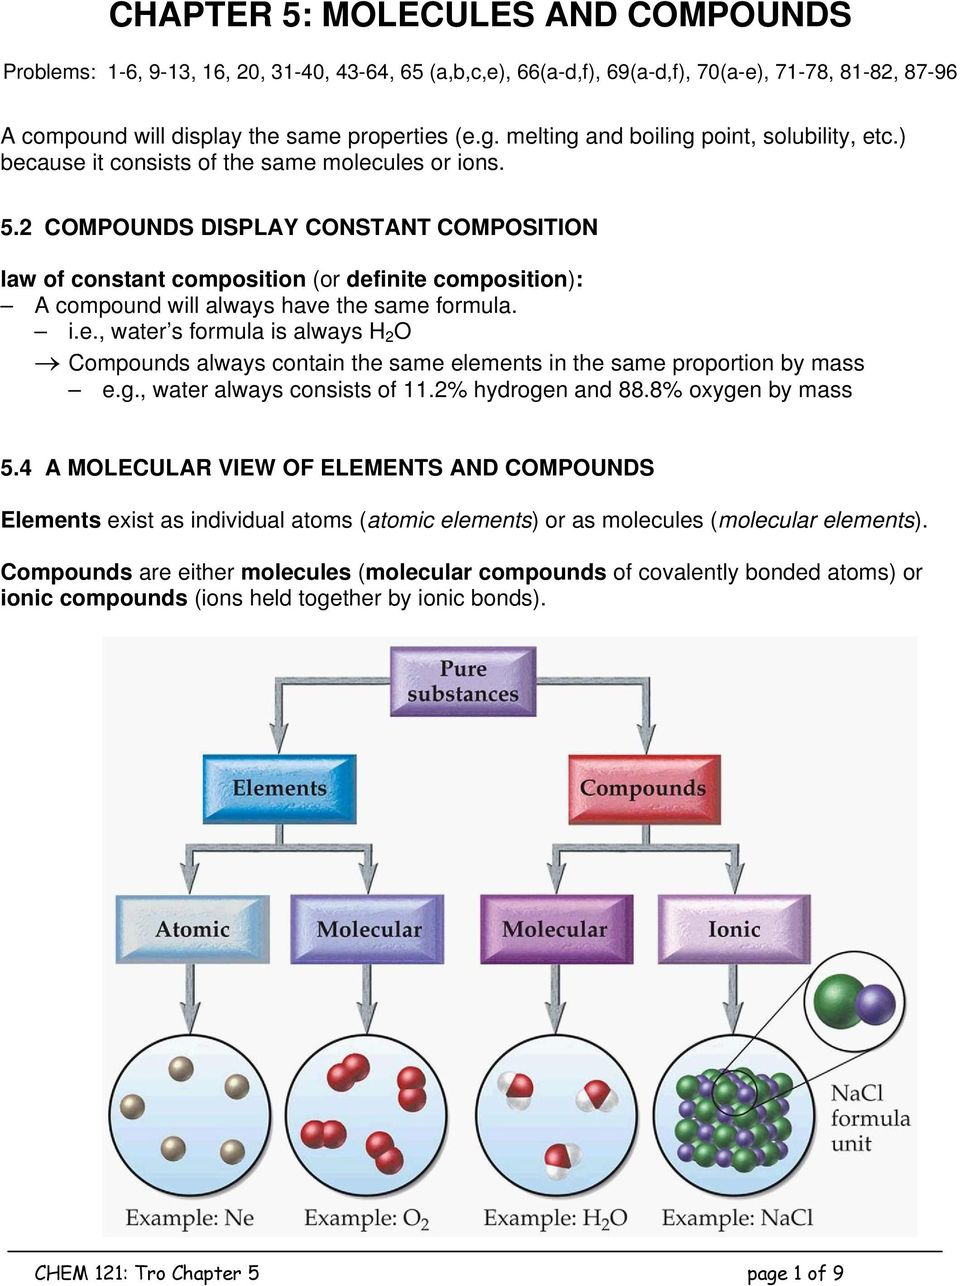 2 COMPOUNDS DISPLAY CONSTANT COMPOSITION law of constant composition (or definite composition): A compound will always have the same formula. i.e., water s formula is always H 2 O Compounds always contain the same elements in the same proportion by mass e.